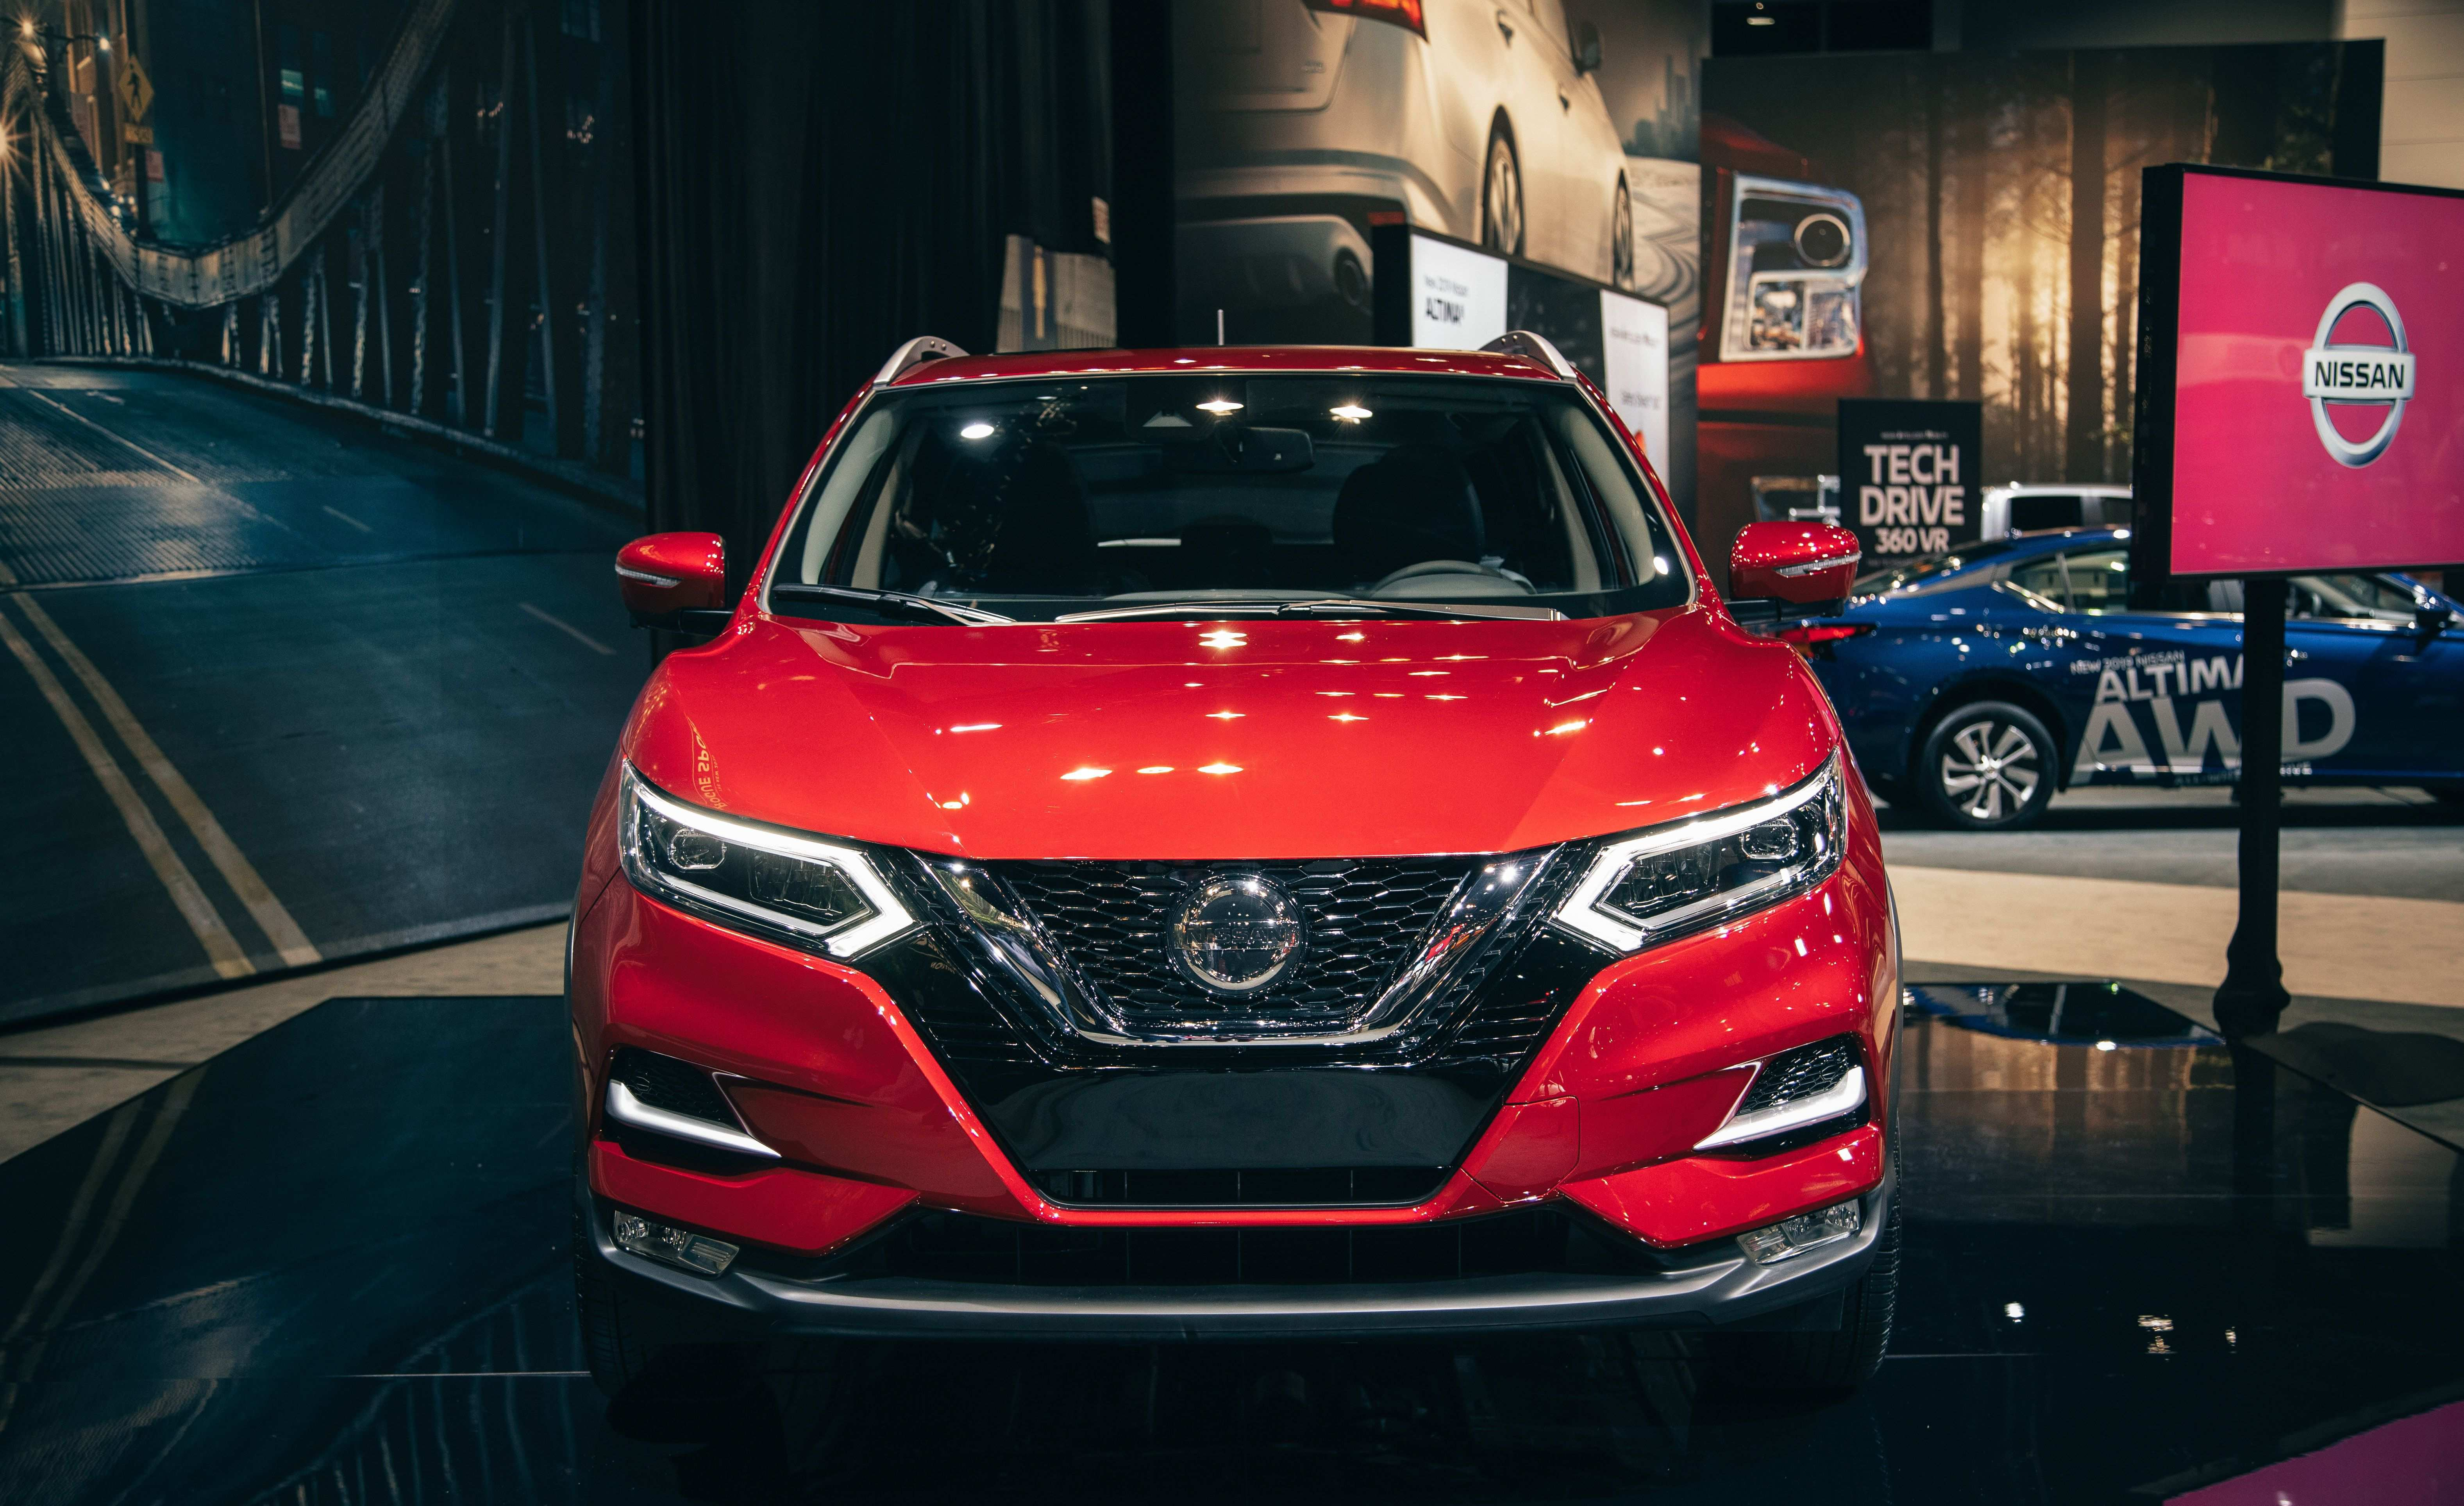 76 Best Review When Does The 2020 Nissan Rogue Come Out Rumors with When Does The 2020 Nissan Rogue Come Out